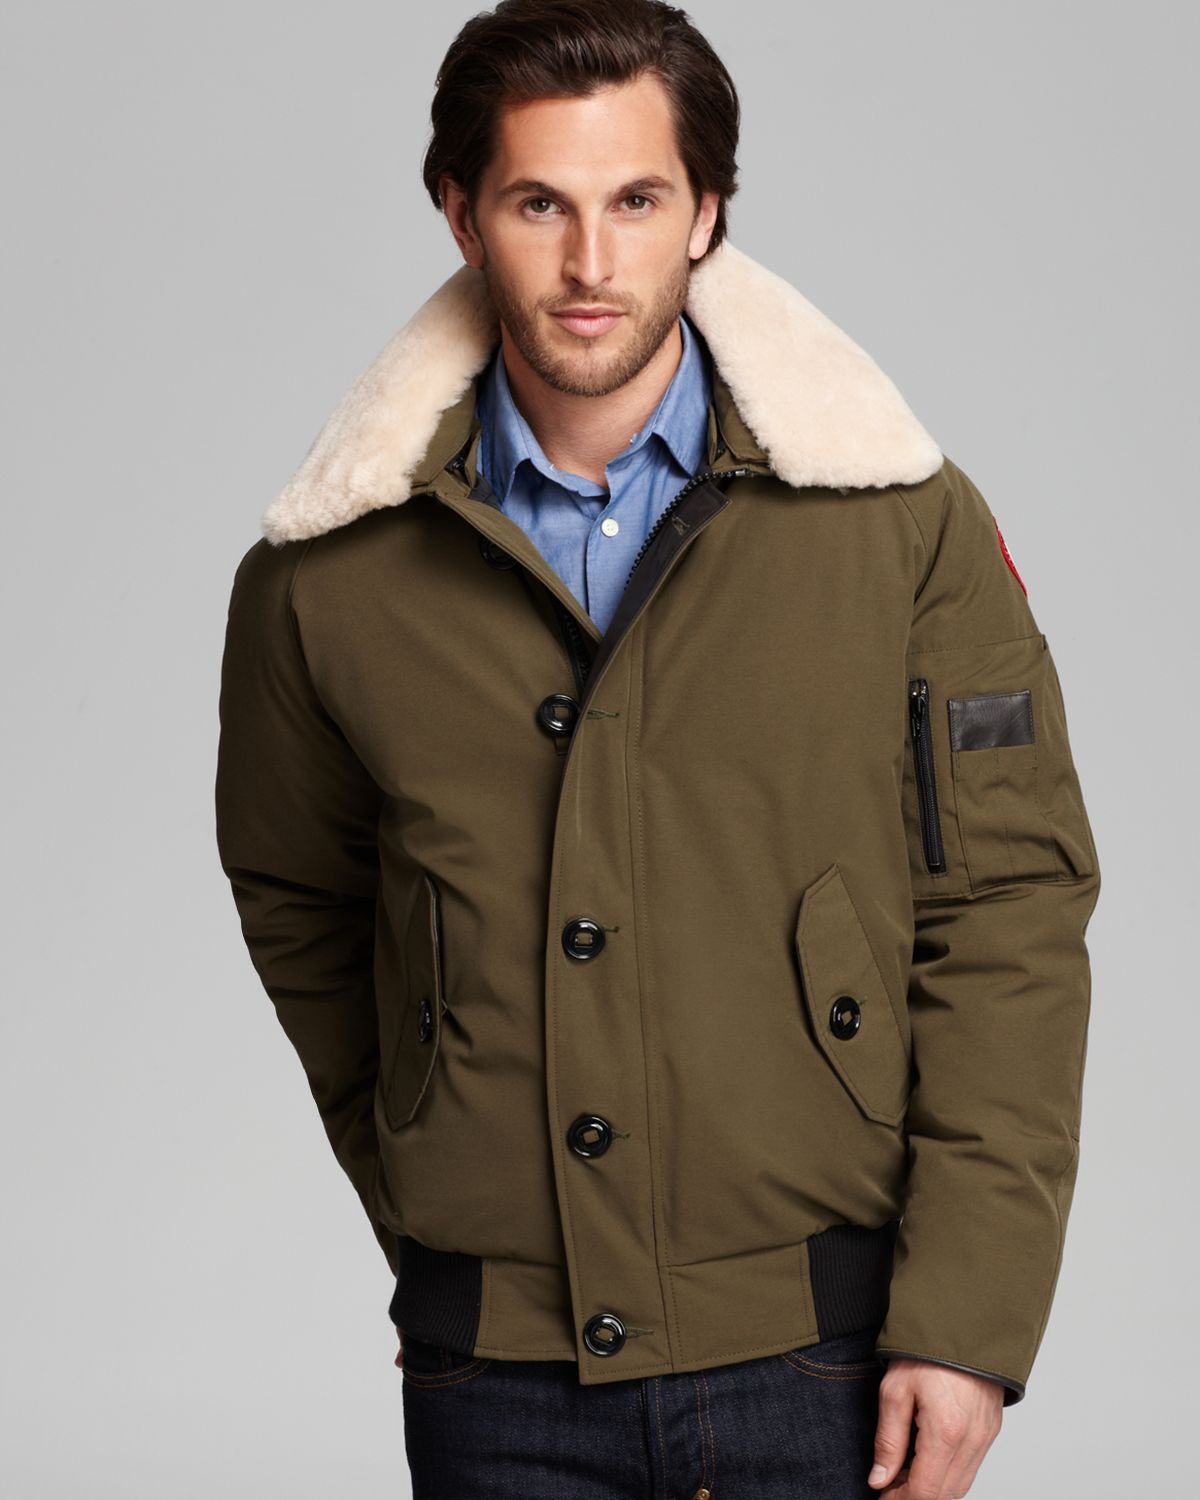 Canada Men S Sevens: Canada Goose Foxe Bomber Jacket With Shearling